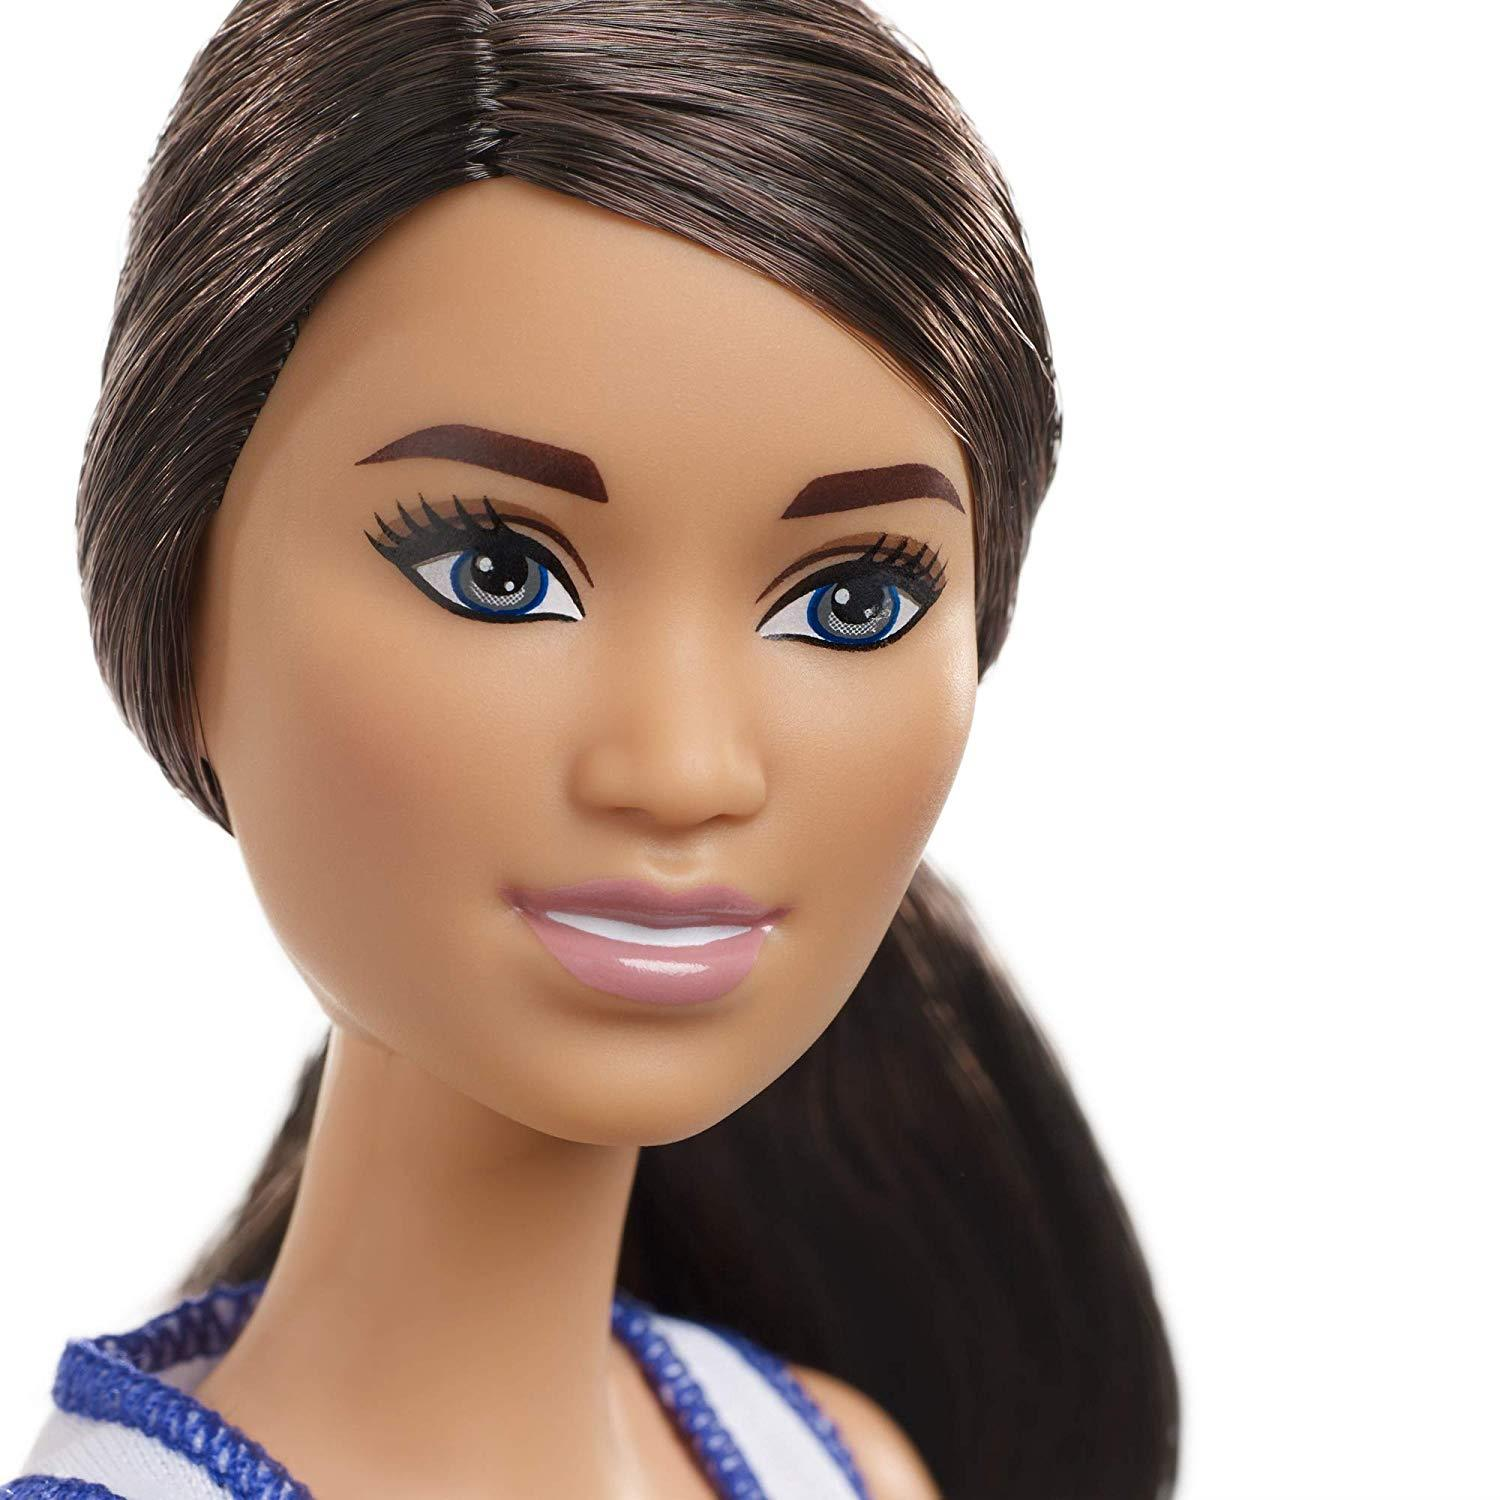 Barbie-Made-to-Move-Collectable-Careers-Fashion-Dolls miniatura 9